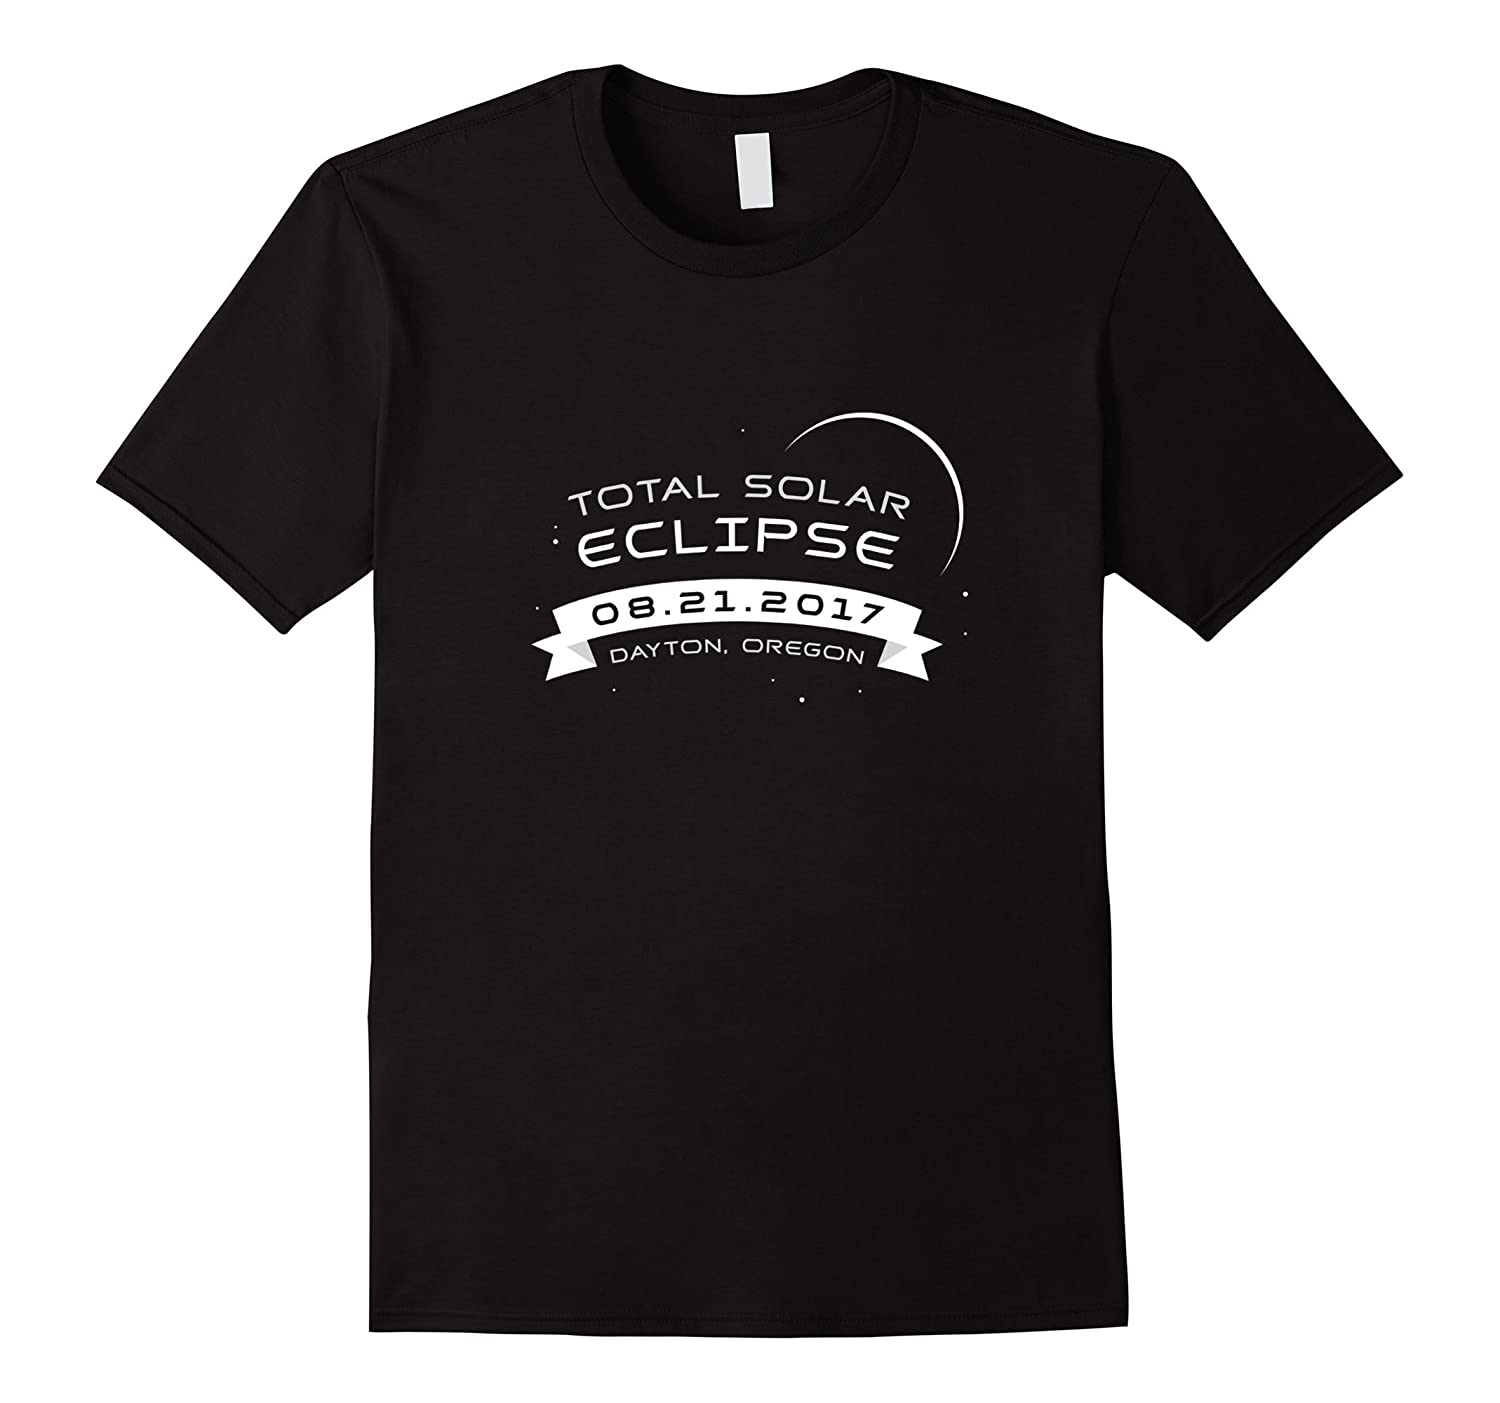 Total Solar Eclipse 2017 Shirt Dayton Oregon Souvenir-Vaci